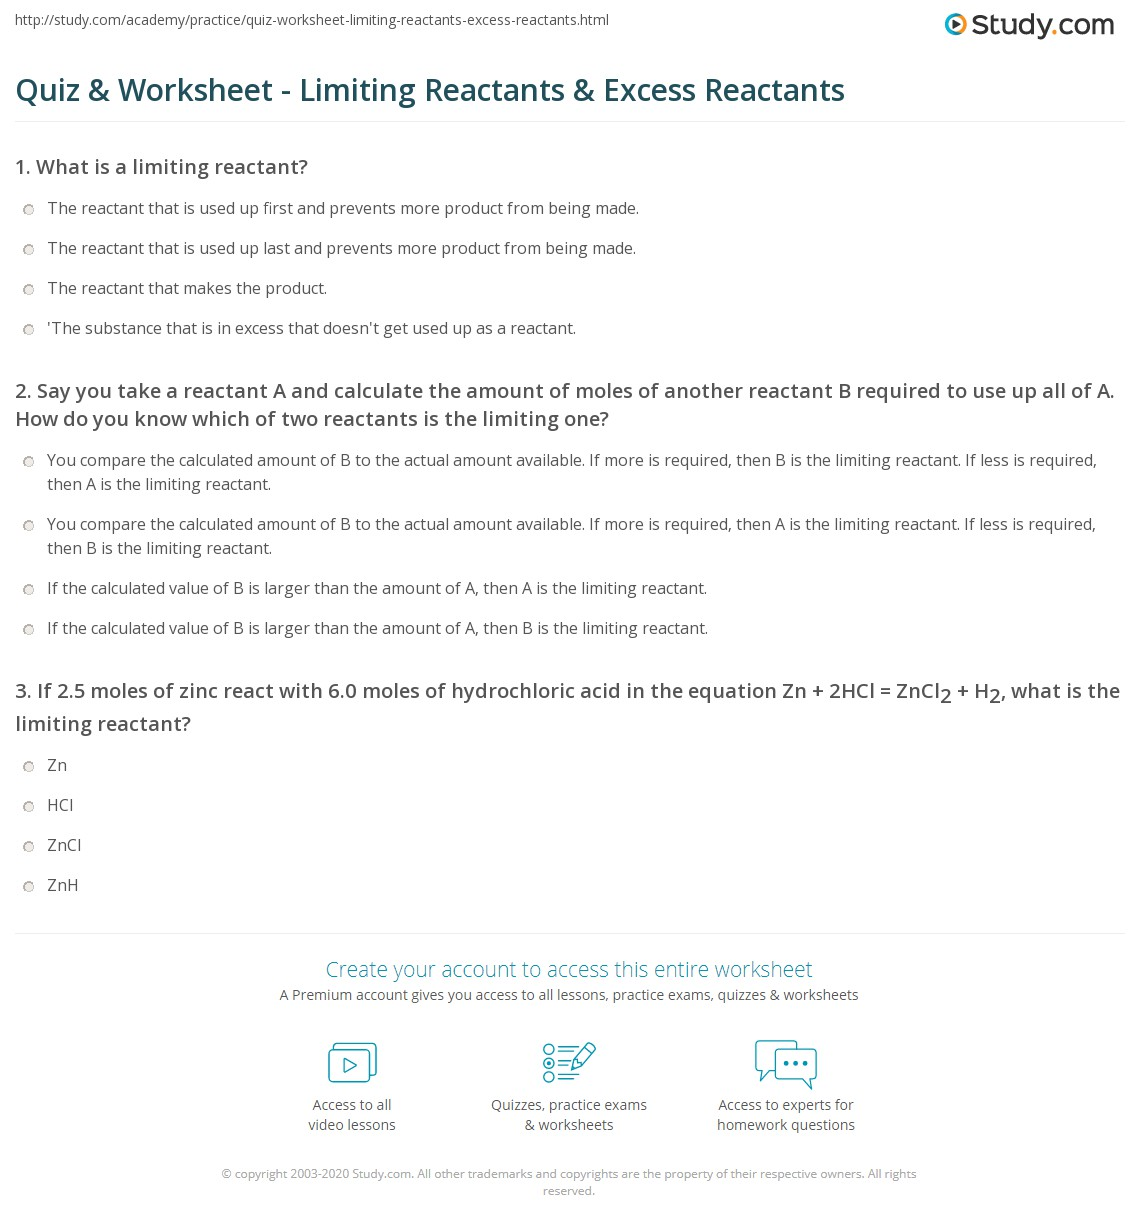 Free Worksheet Limiting Reagent Worksheet Answers quiz worksheet limiting reactants excess study com say you take a reactant and calculate the amount of moles another b required to use up all how do know whi